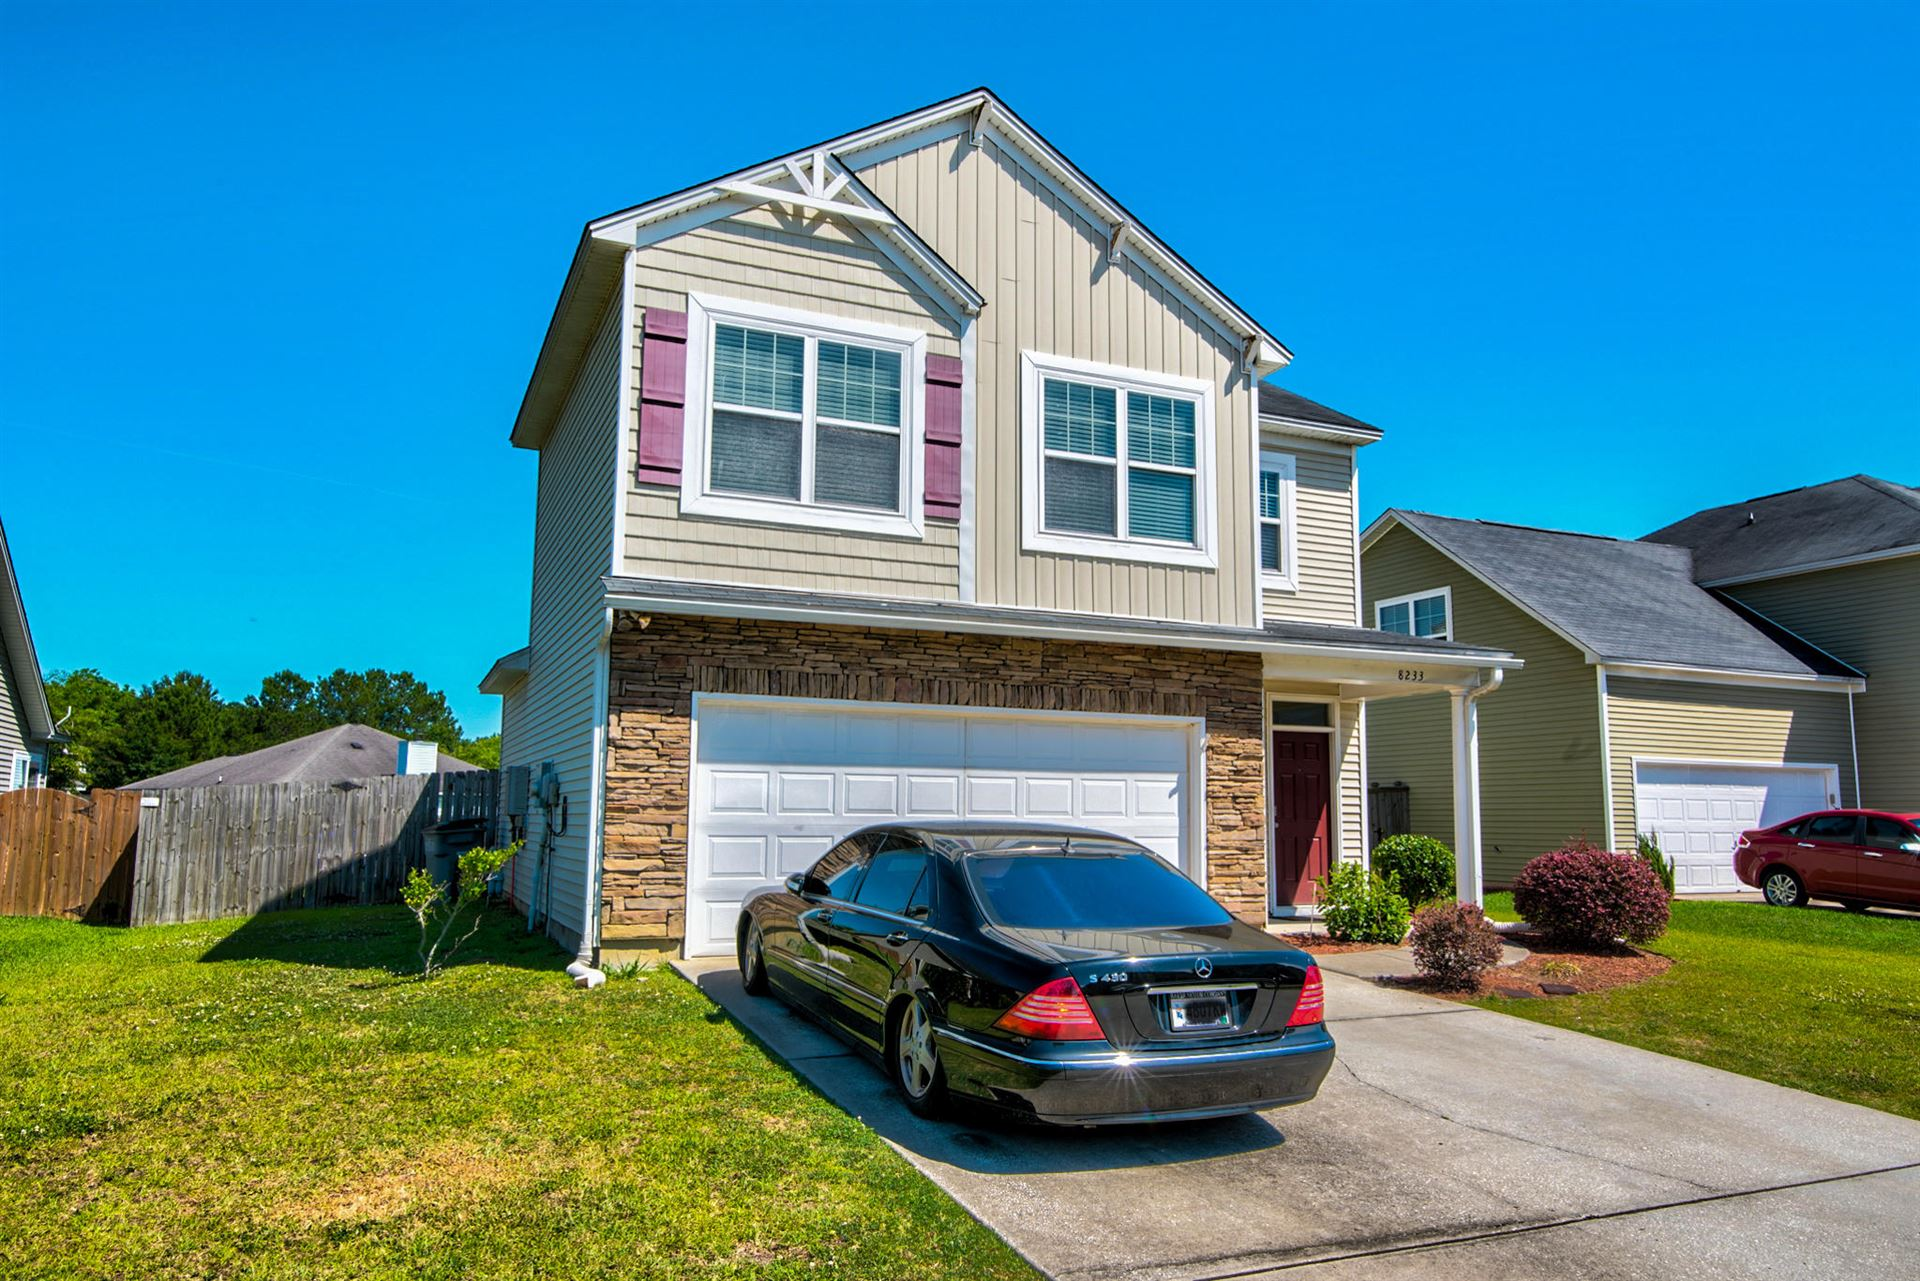 Photo of 8233 Little Sydneys Way, North Charleston, SC 29406 (MLS # 20014132)